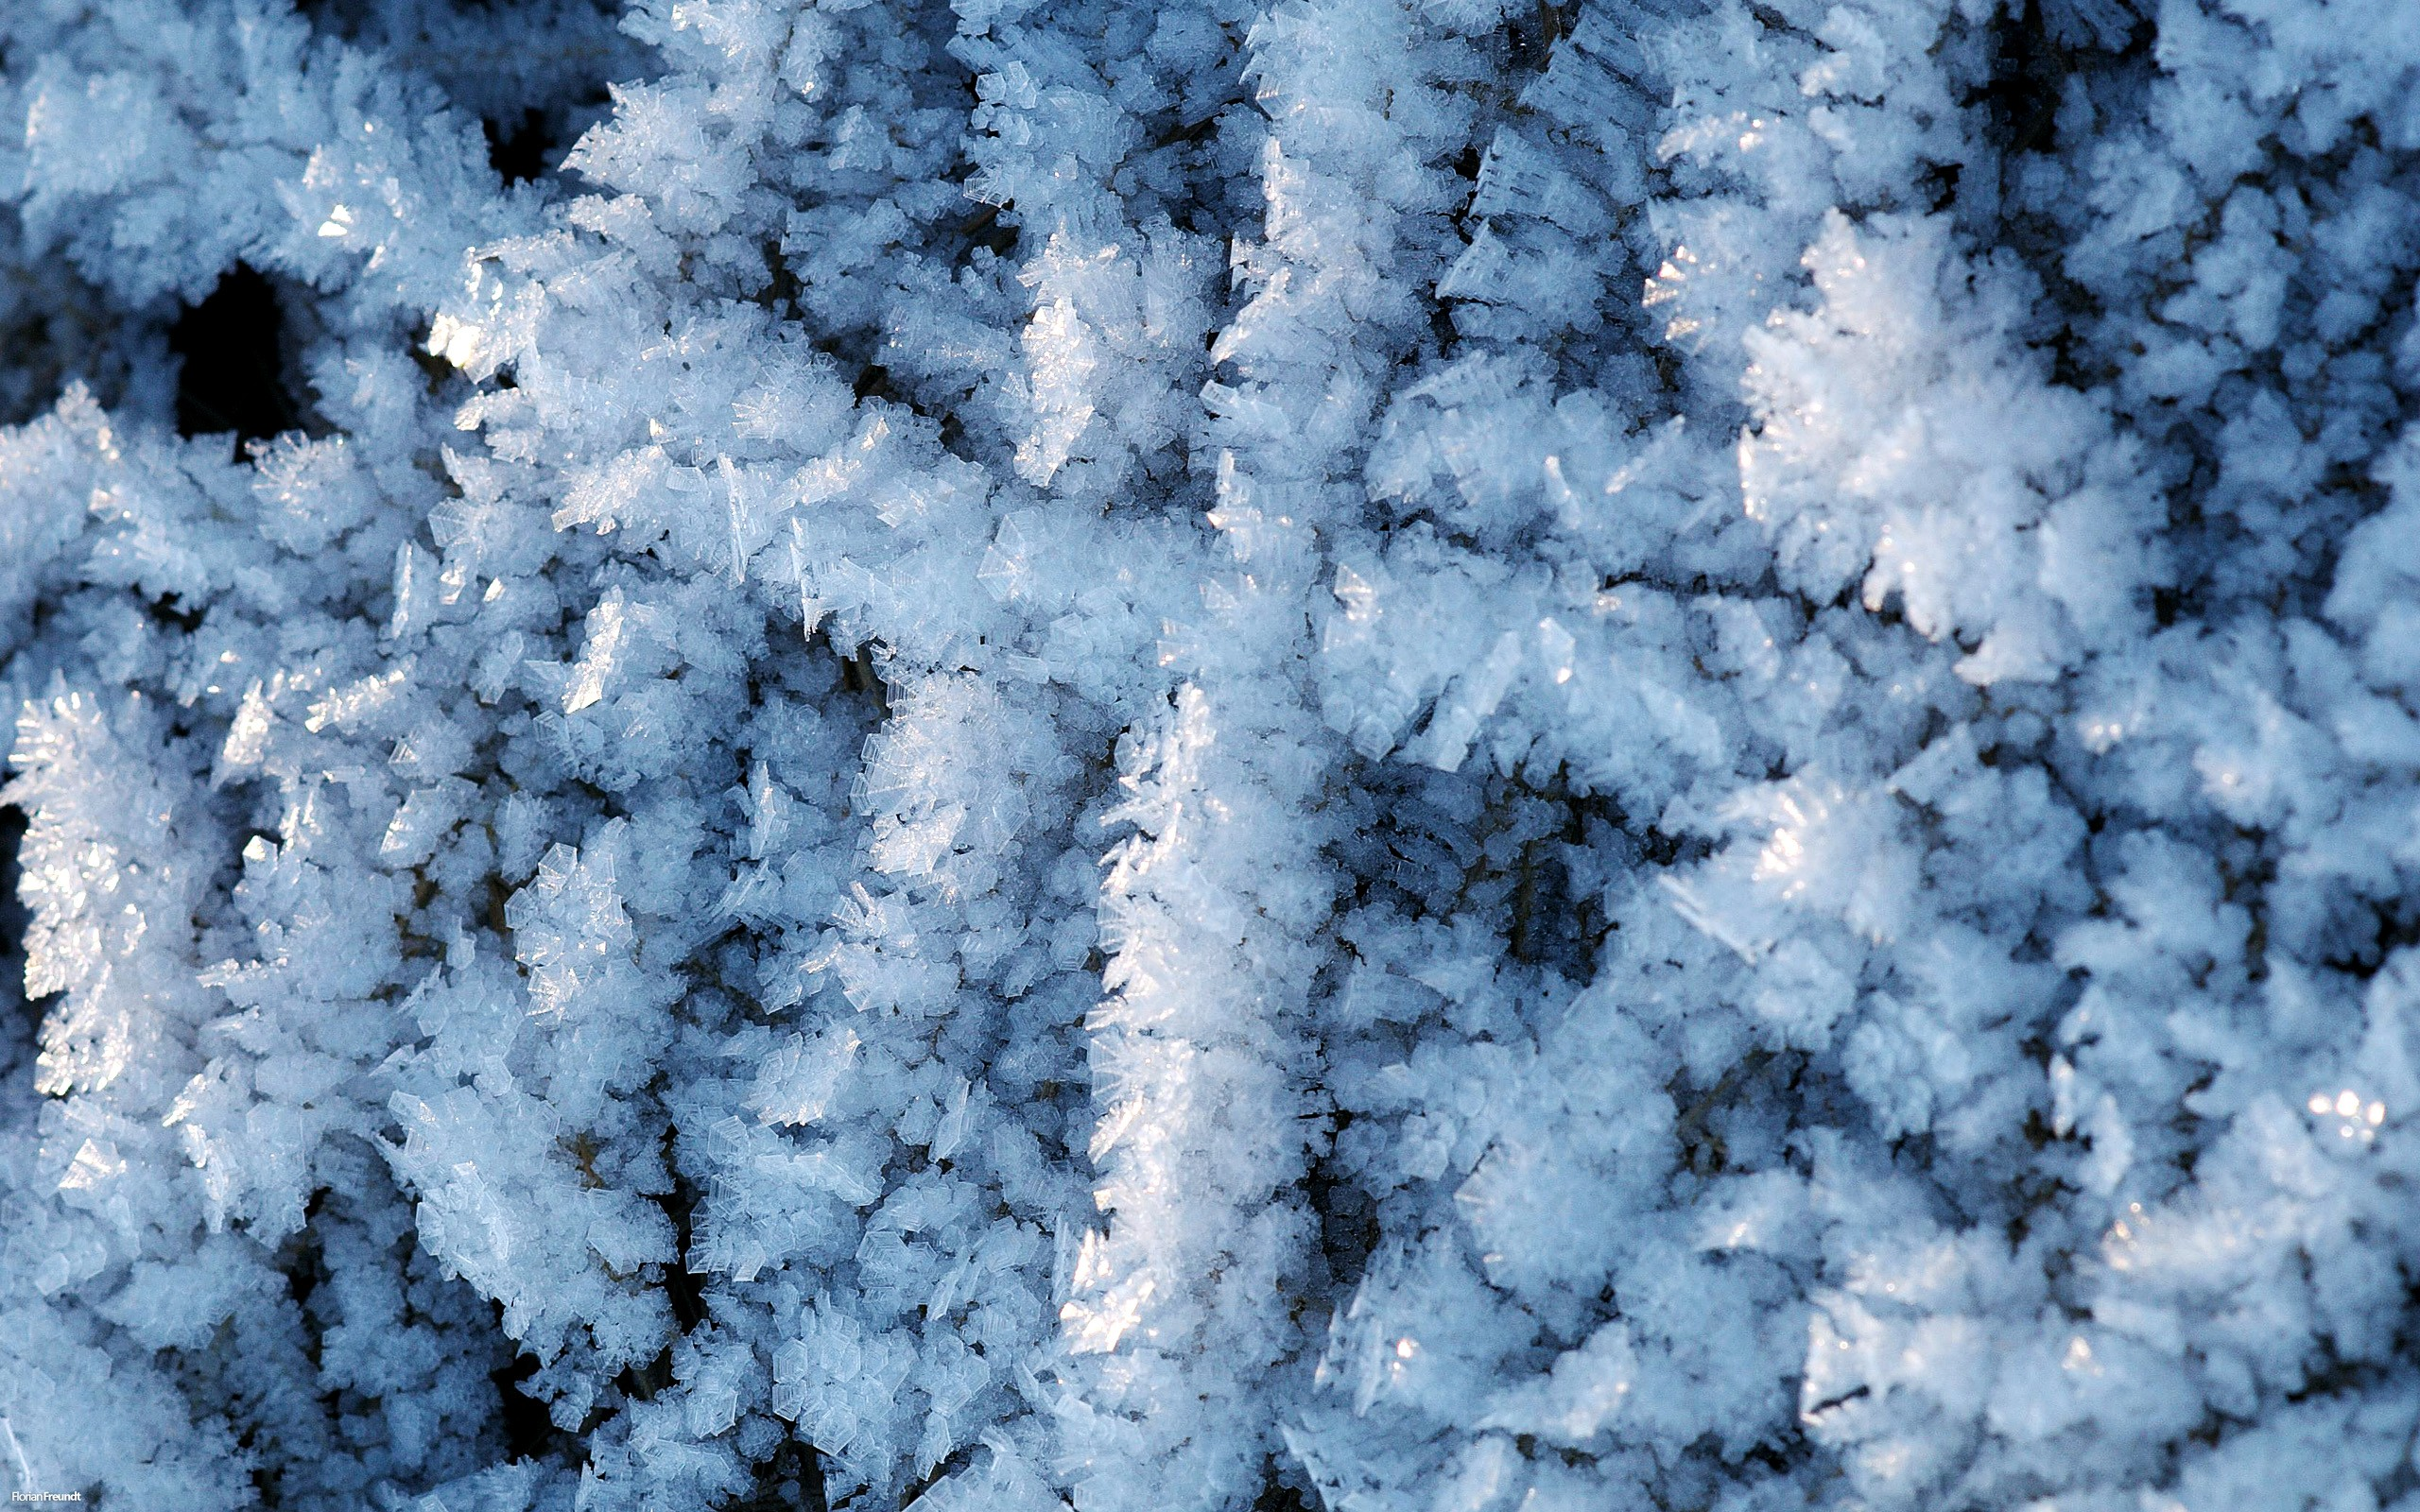 Snow Is Beautifully Decorating The Plants What An Attraction Can Be Warm And Approachable Natural Scenery Wallpaper